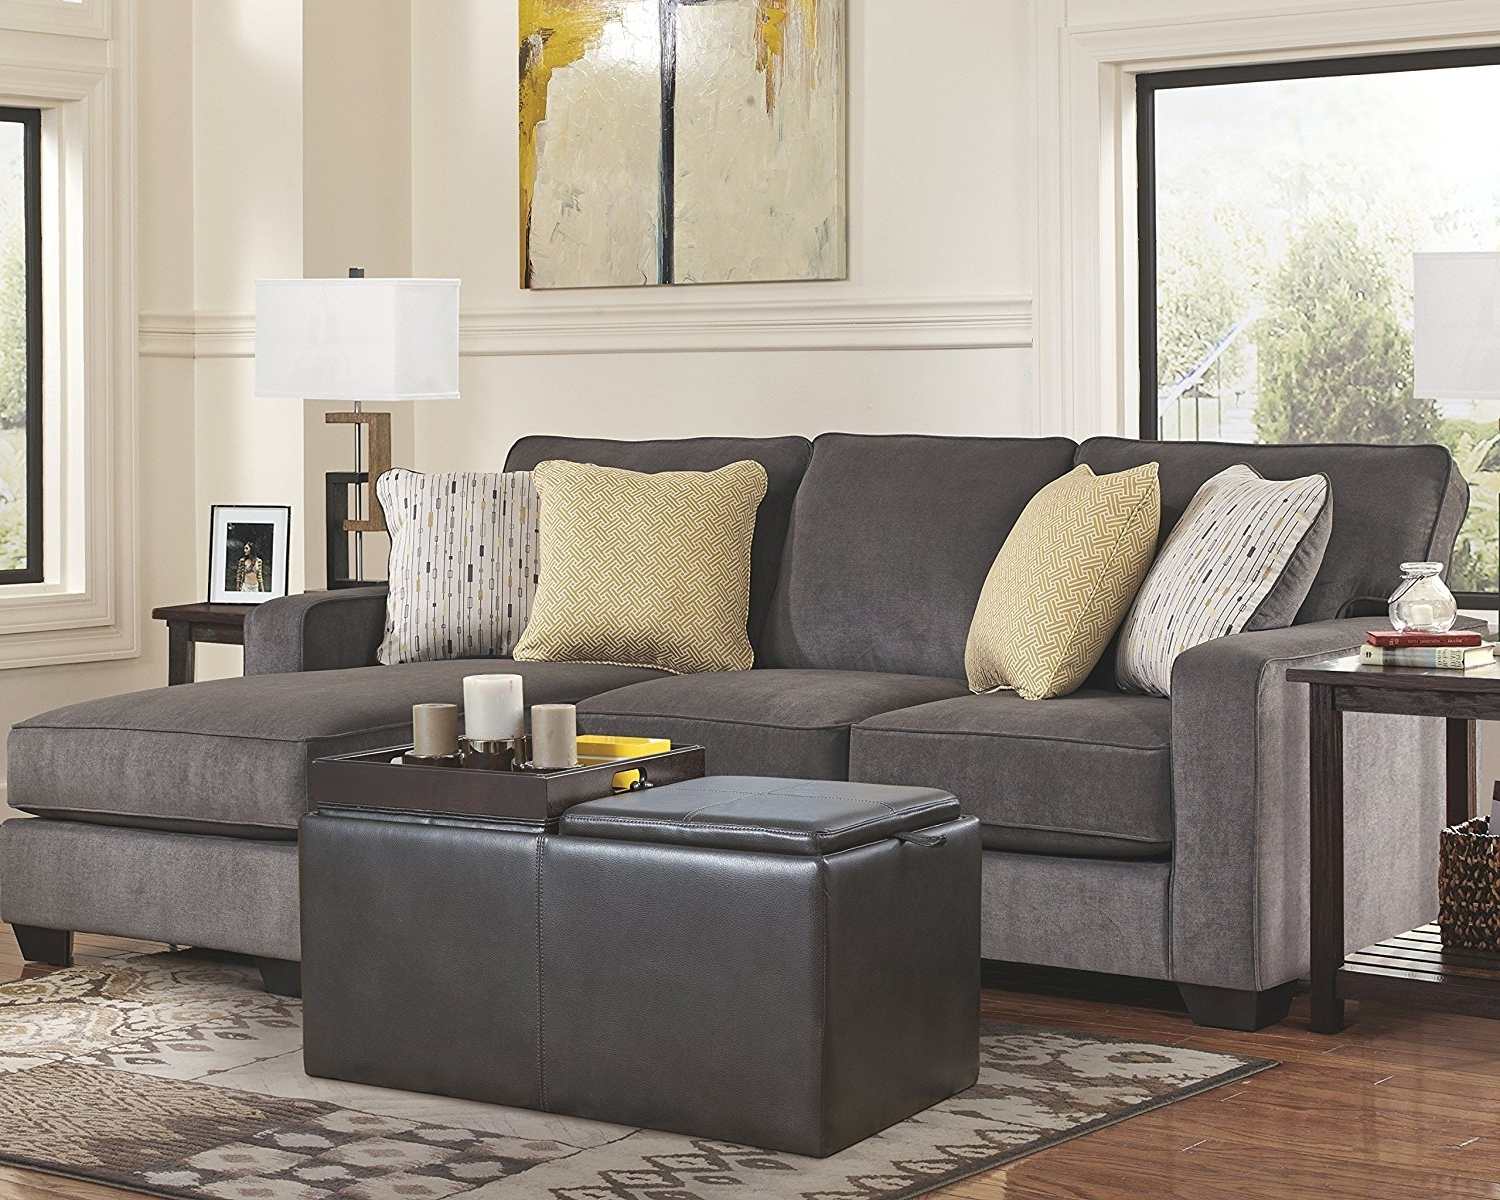 Hodan Sofas With Chaise With Trendy Amazon: Ashley Hodan 7970018 93 Inch Sofa Chaise With Pillows (View 9 of 15)